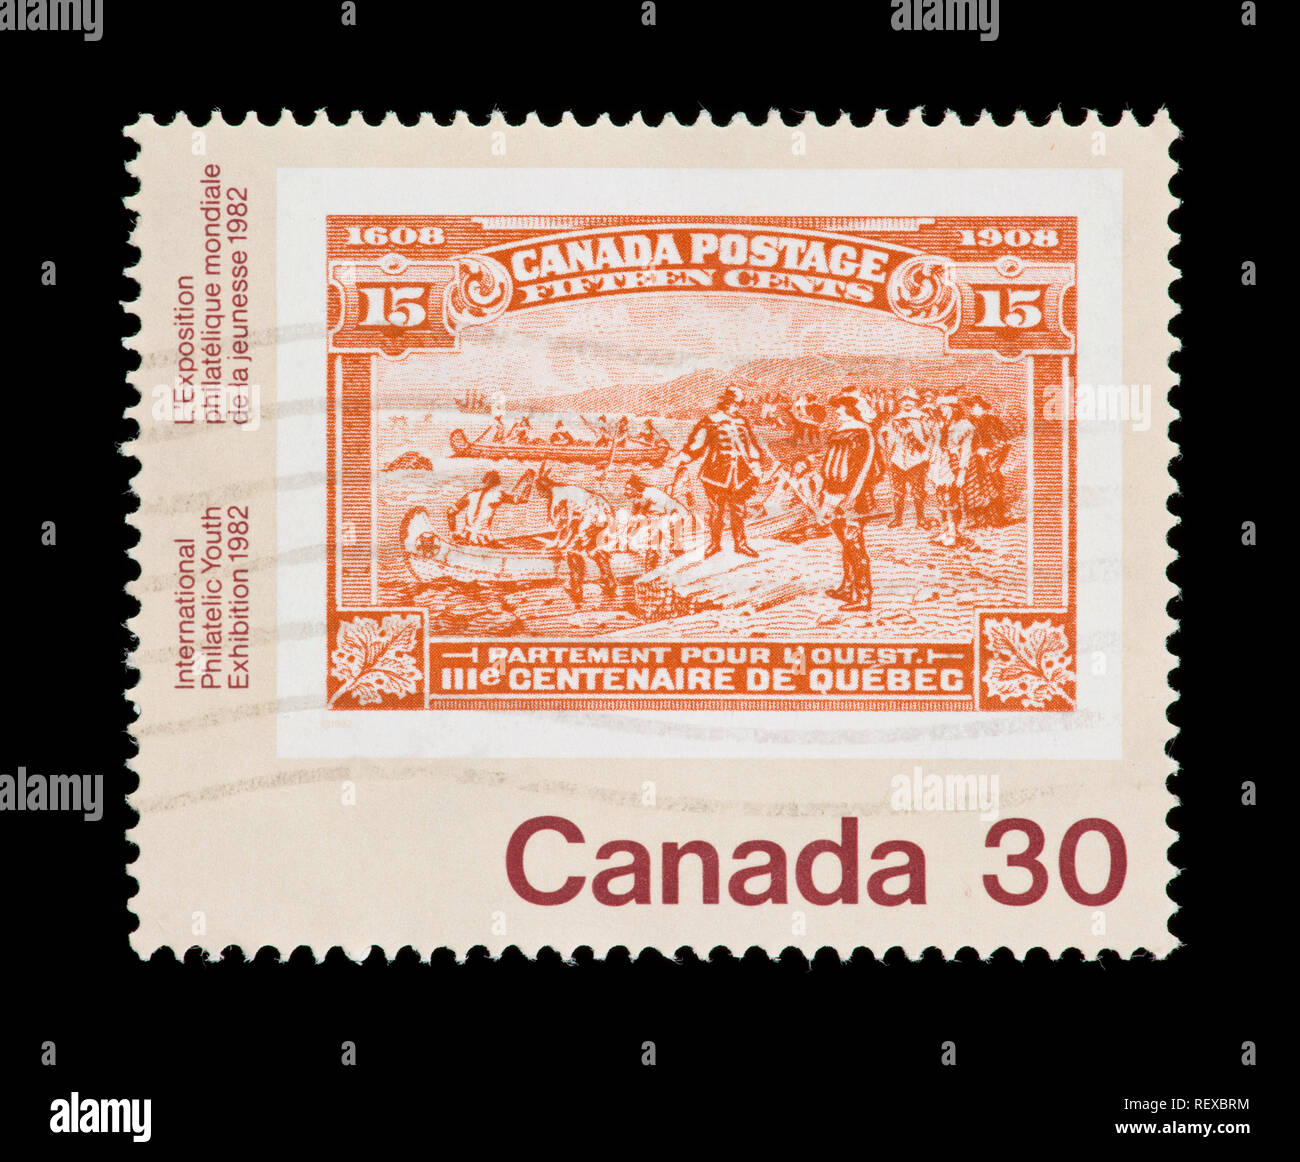 Postage stamp from Canada depicting a historical Canadian stamp, issued for the '91 International Philatelic Youth Exhibition in Toronto - Stock Image